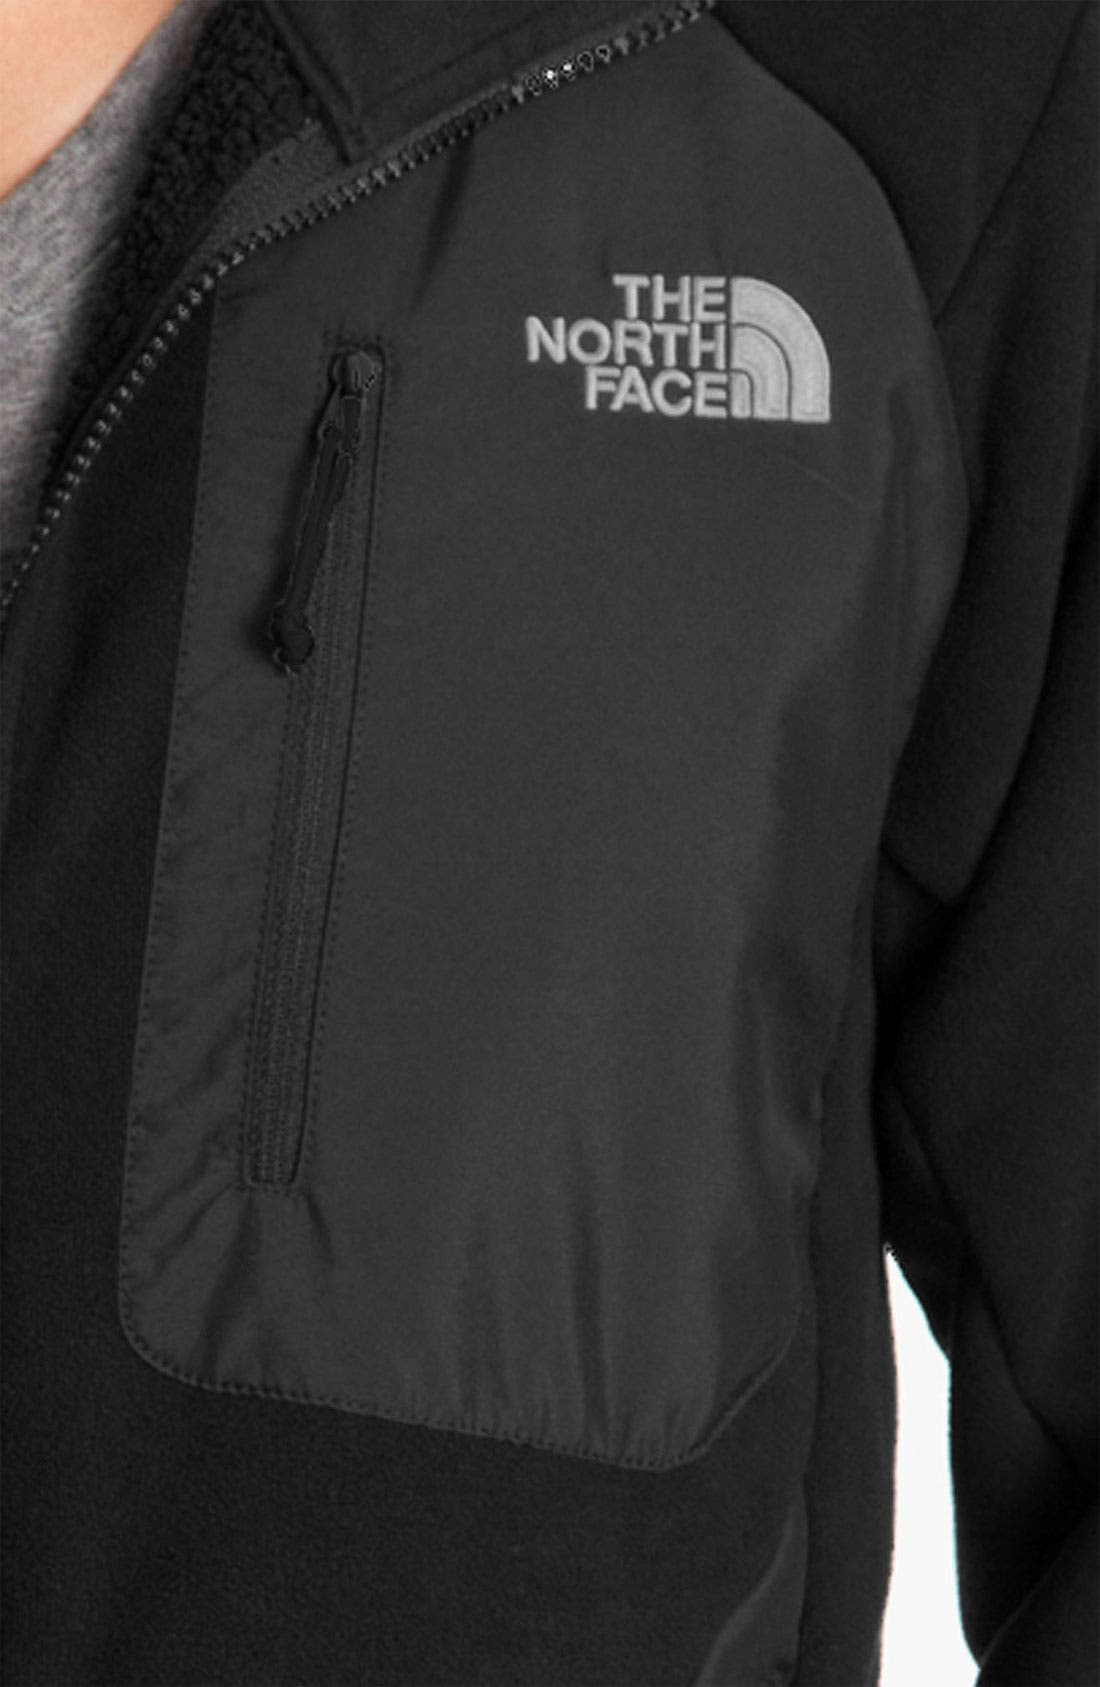 Alternate Image 3  - The North Face 'Angile' Fleece Jacket